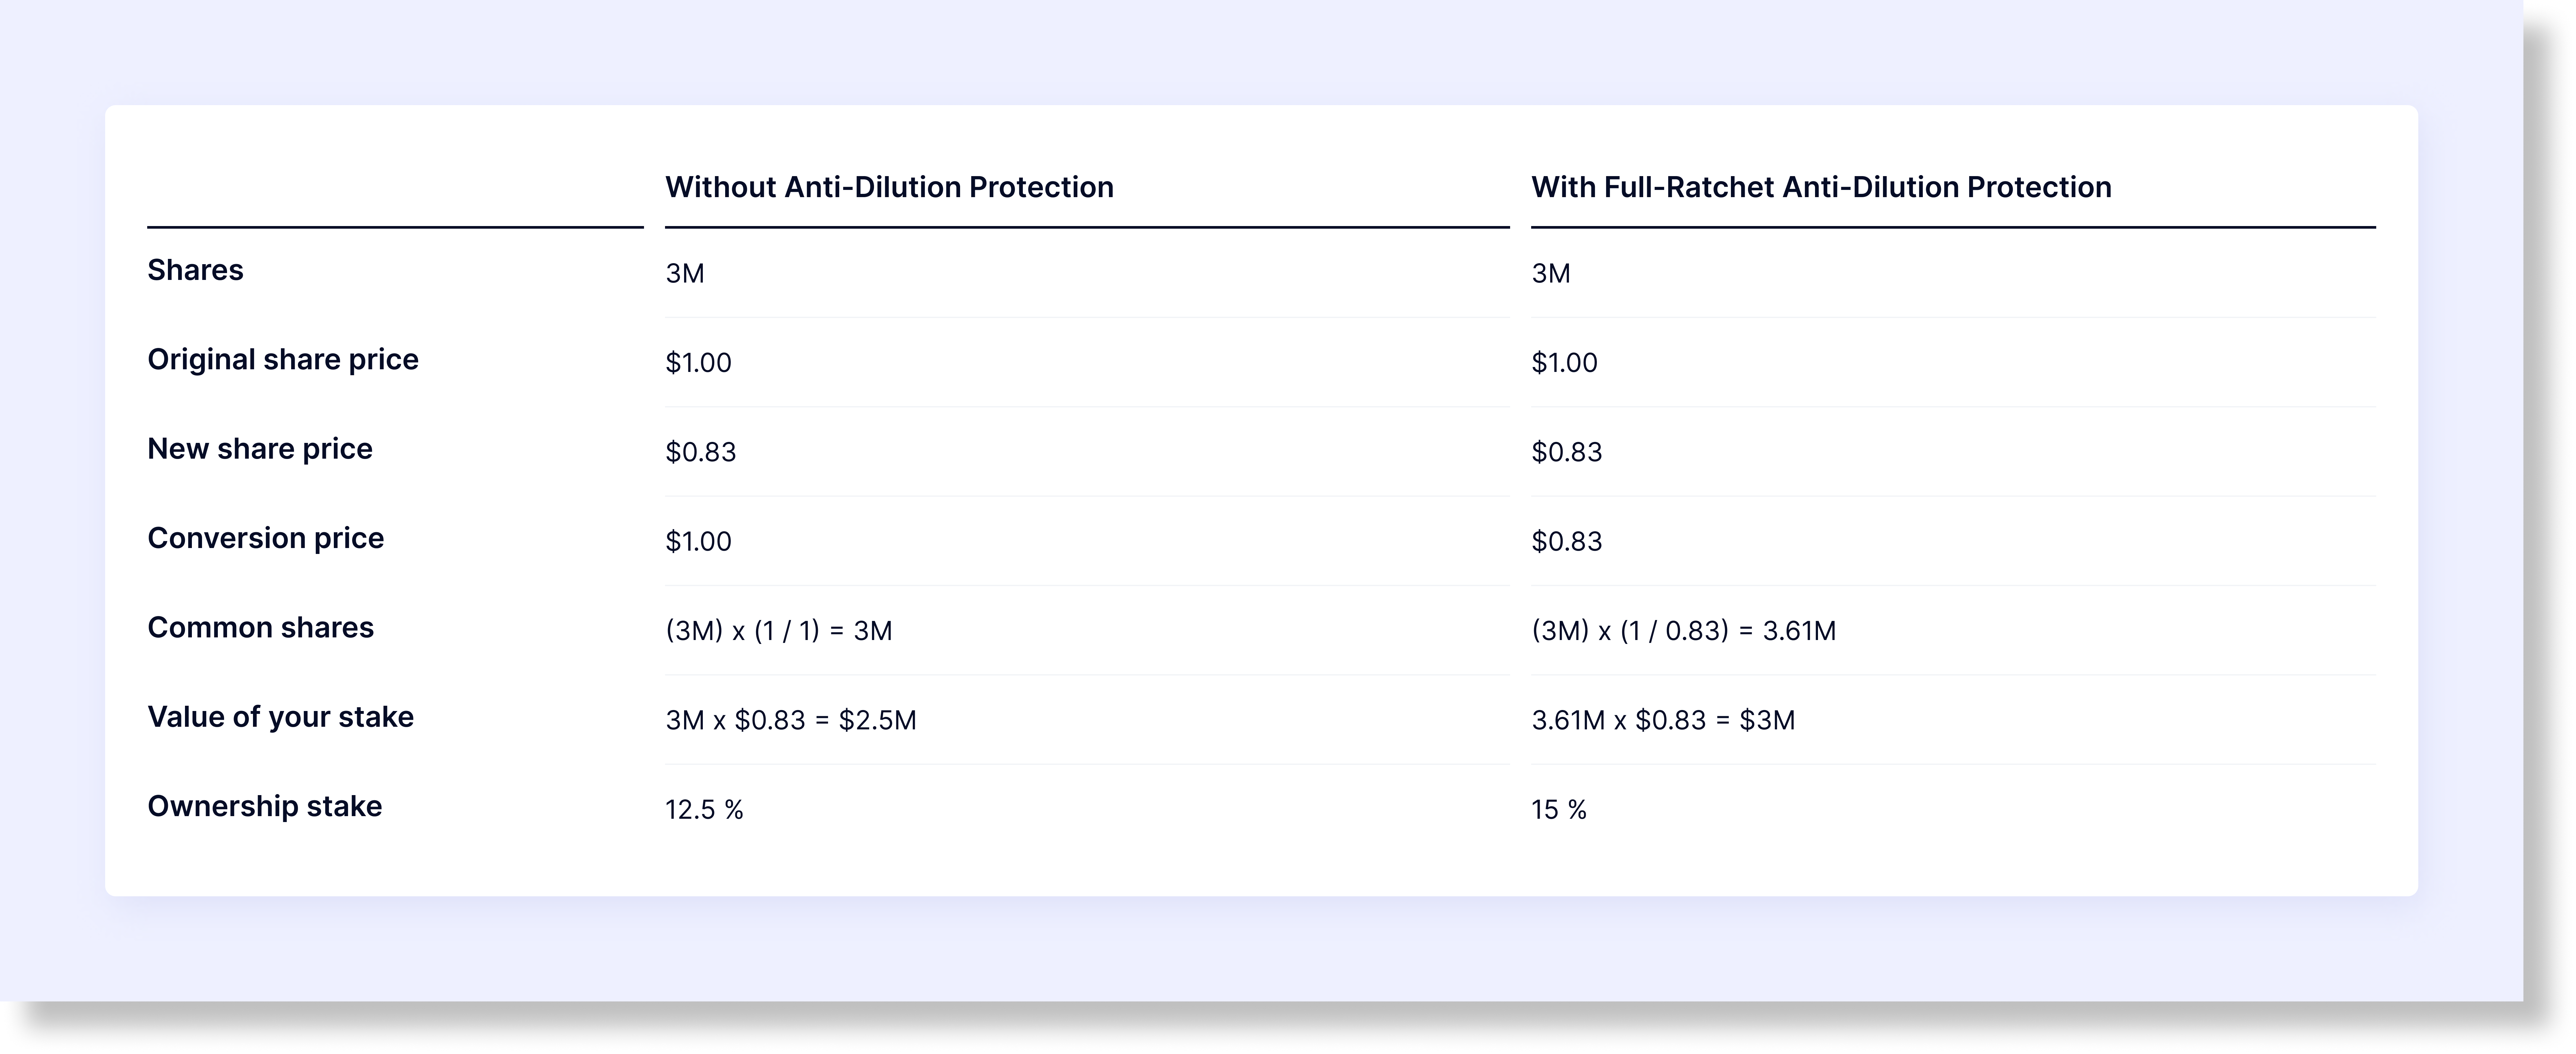 How to Calculate Full-Ratchet Anti-Dilution Protection